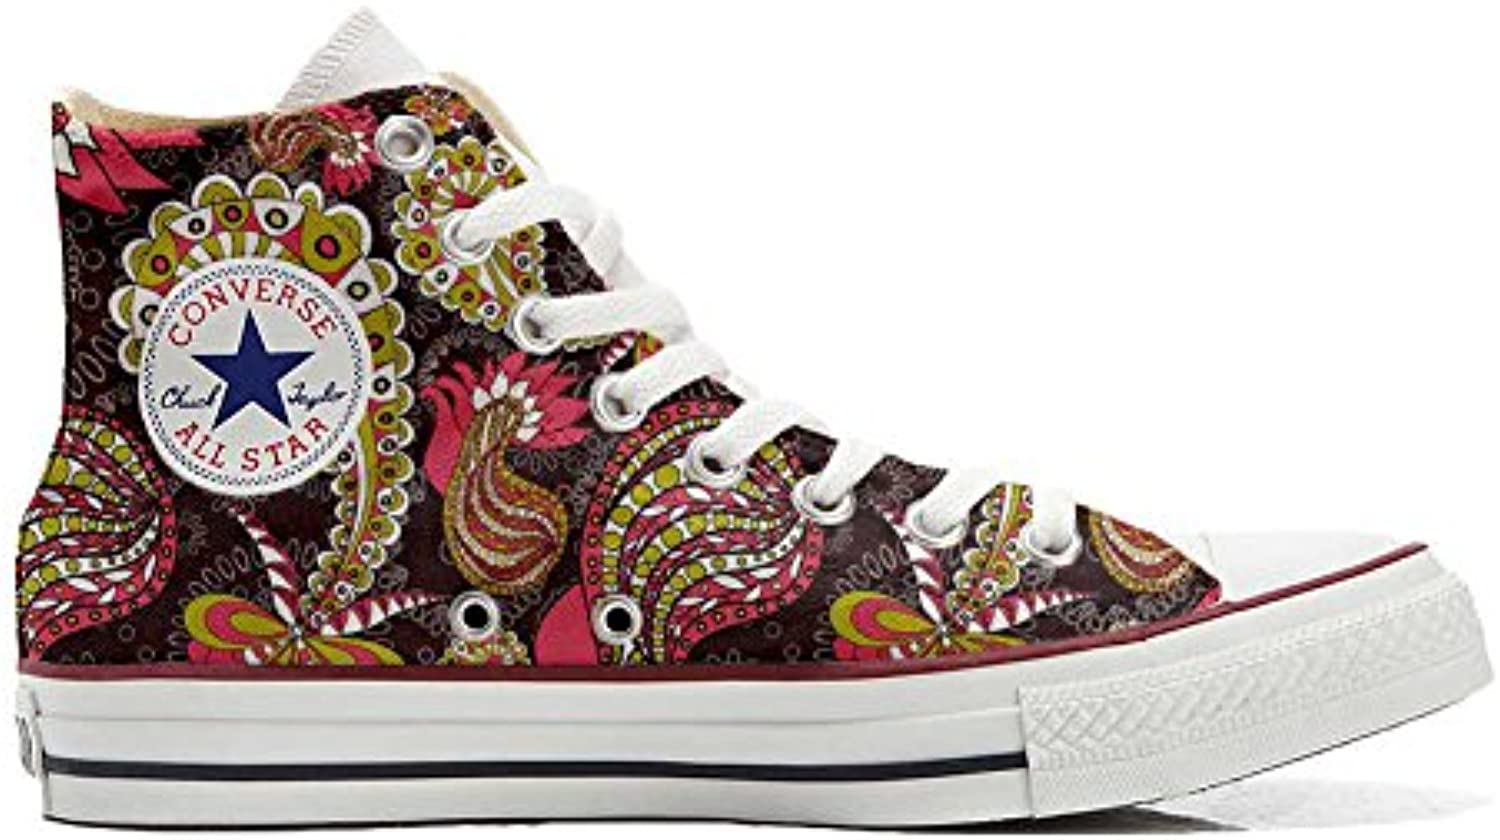 mys Converse All All Converse Star Hi Chaussures Coutume Mixte Adulte (Produit Artisanal) Vintage PaysleyB06X959JSCParent 6491f8